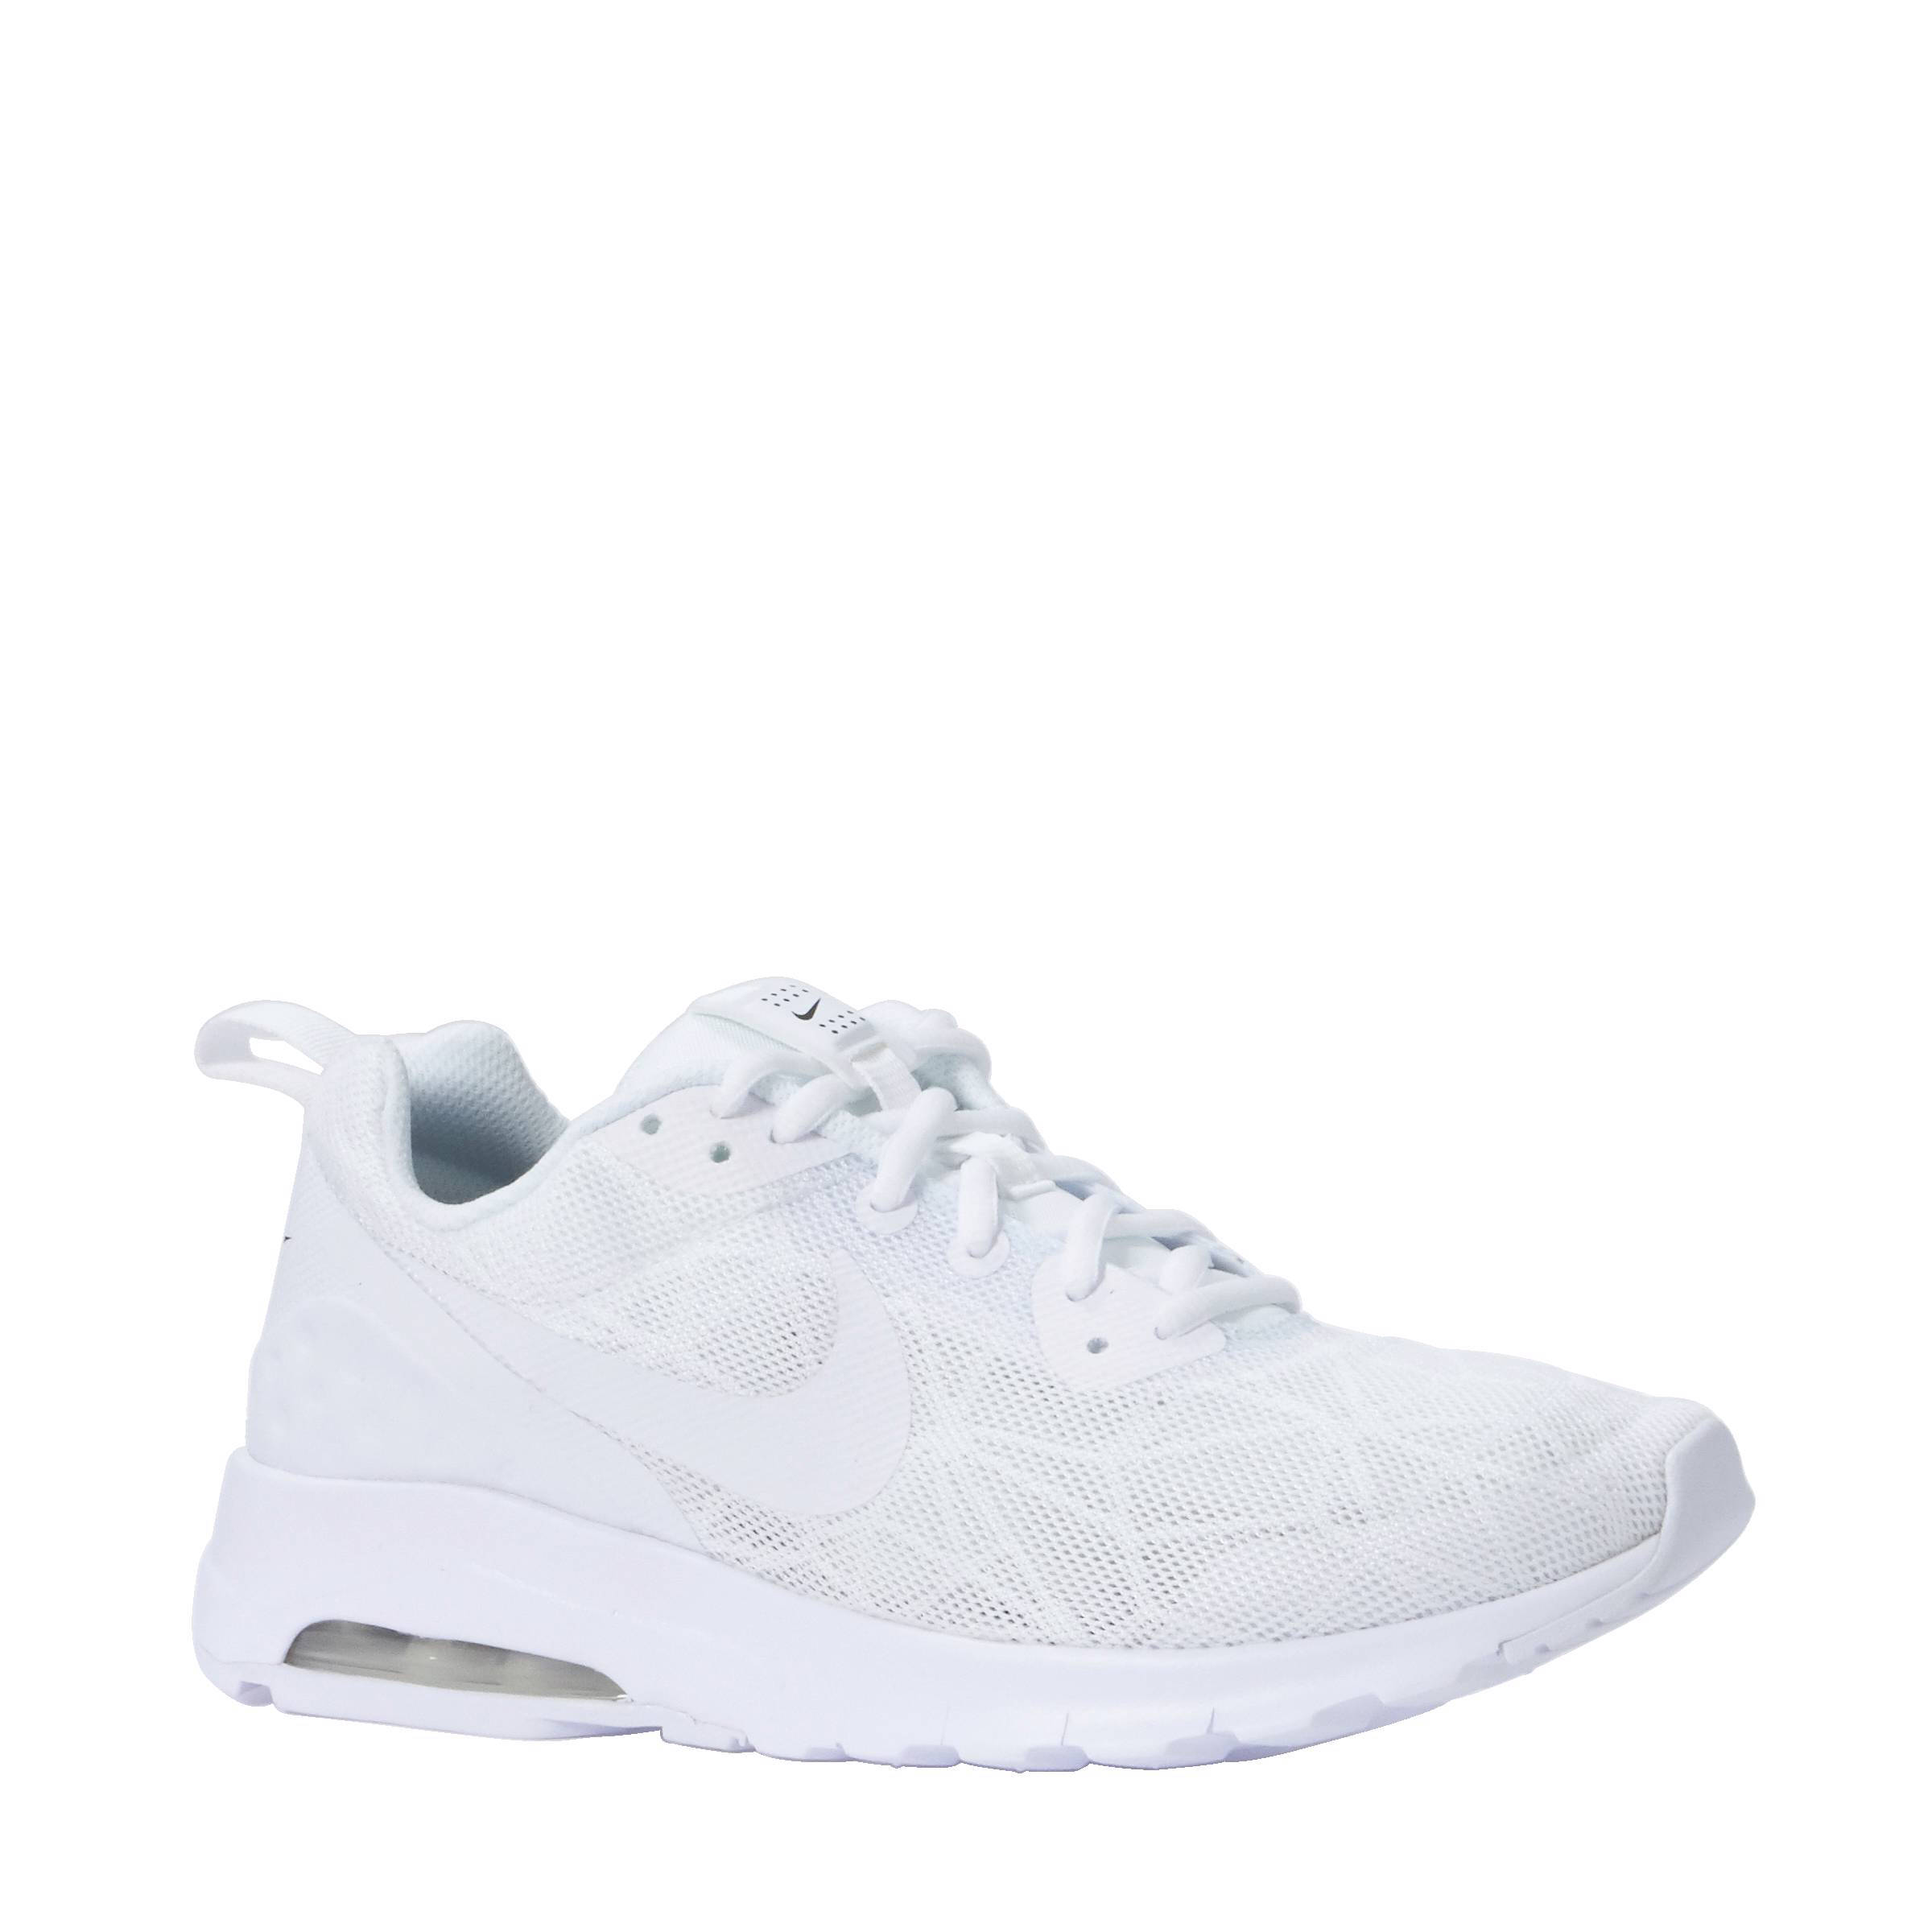 Nike Air Max Motion LW SE sneakers